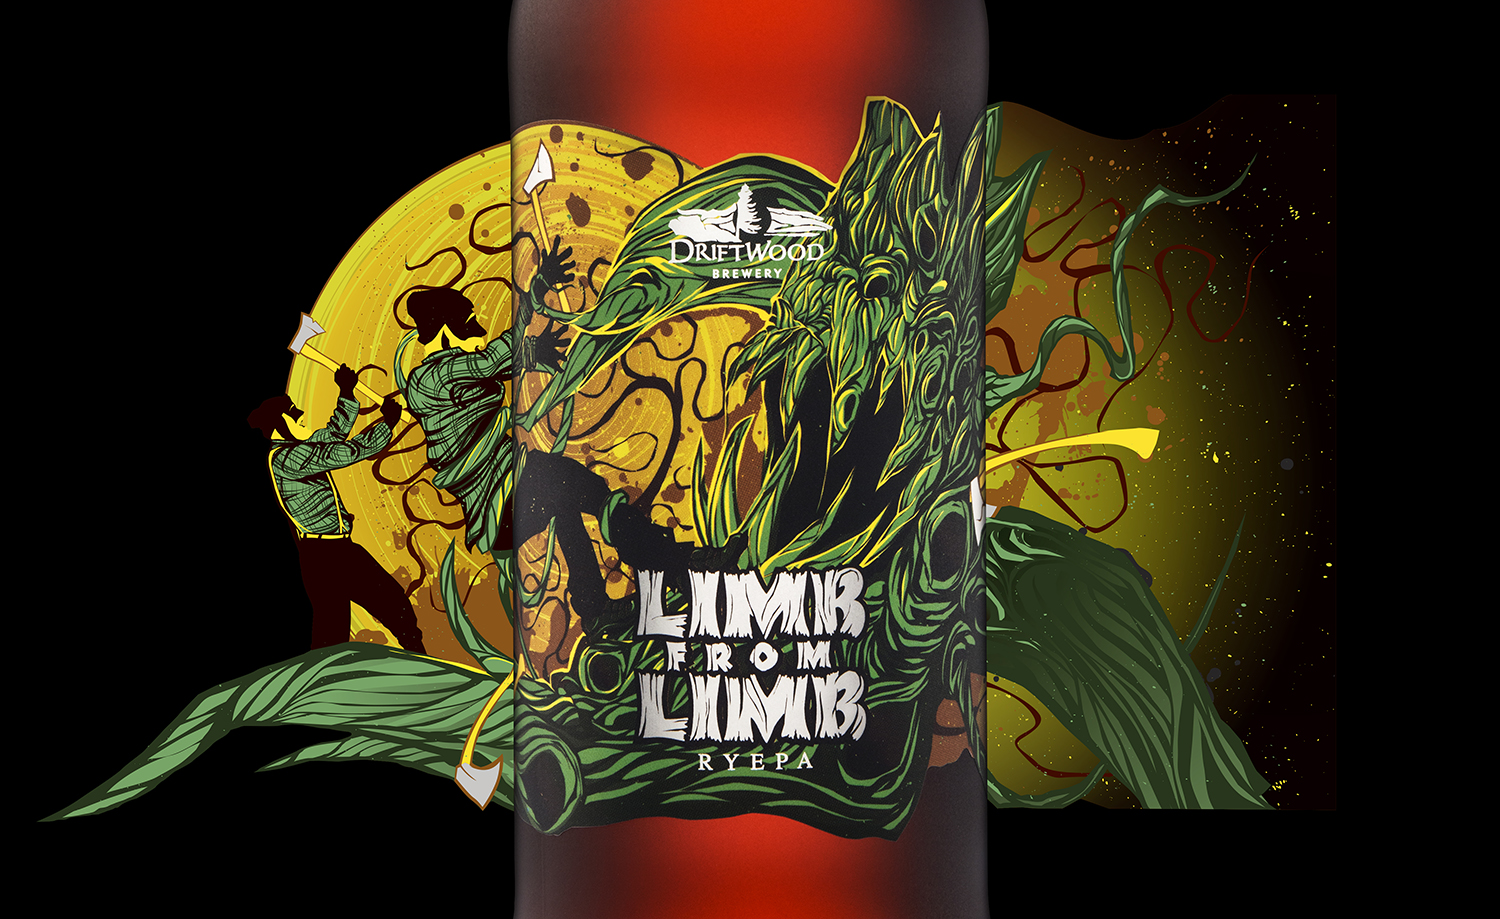 Packaging Design for Driftwood Brewery's Limb From Limb RyePa